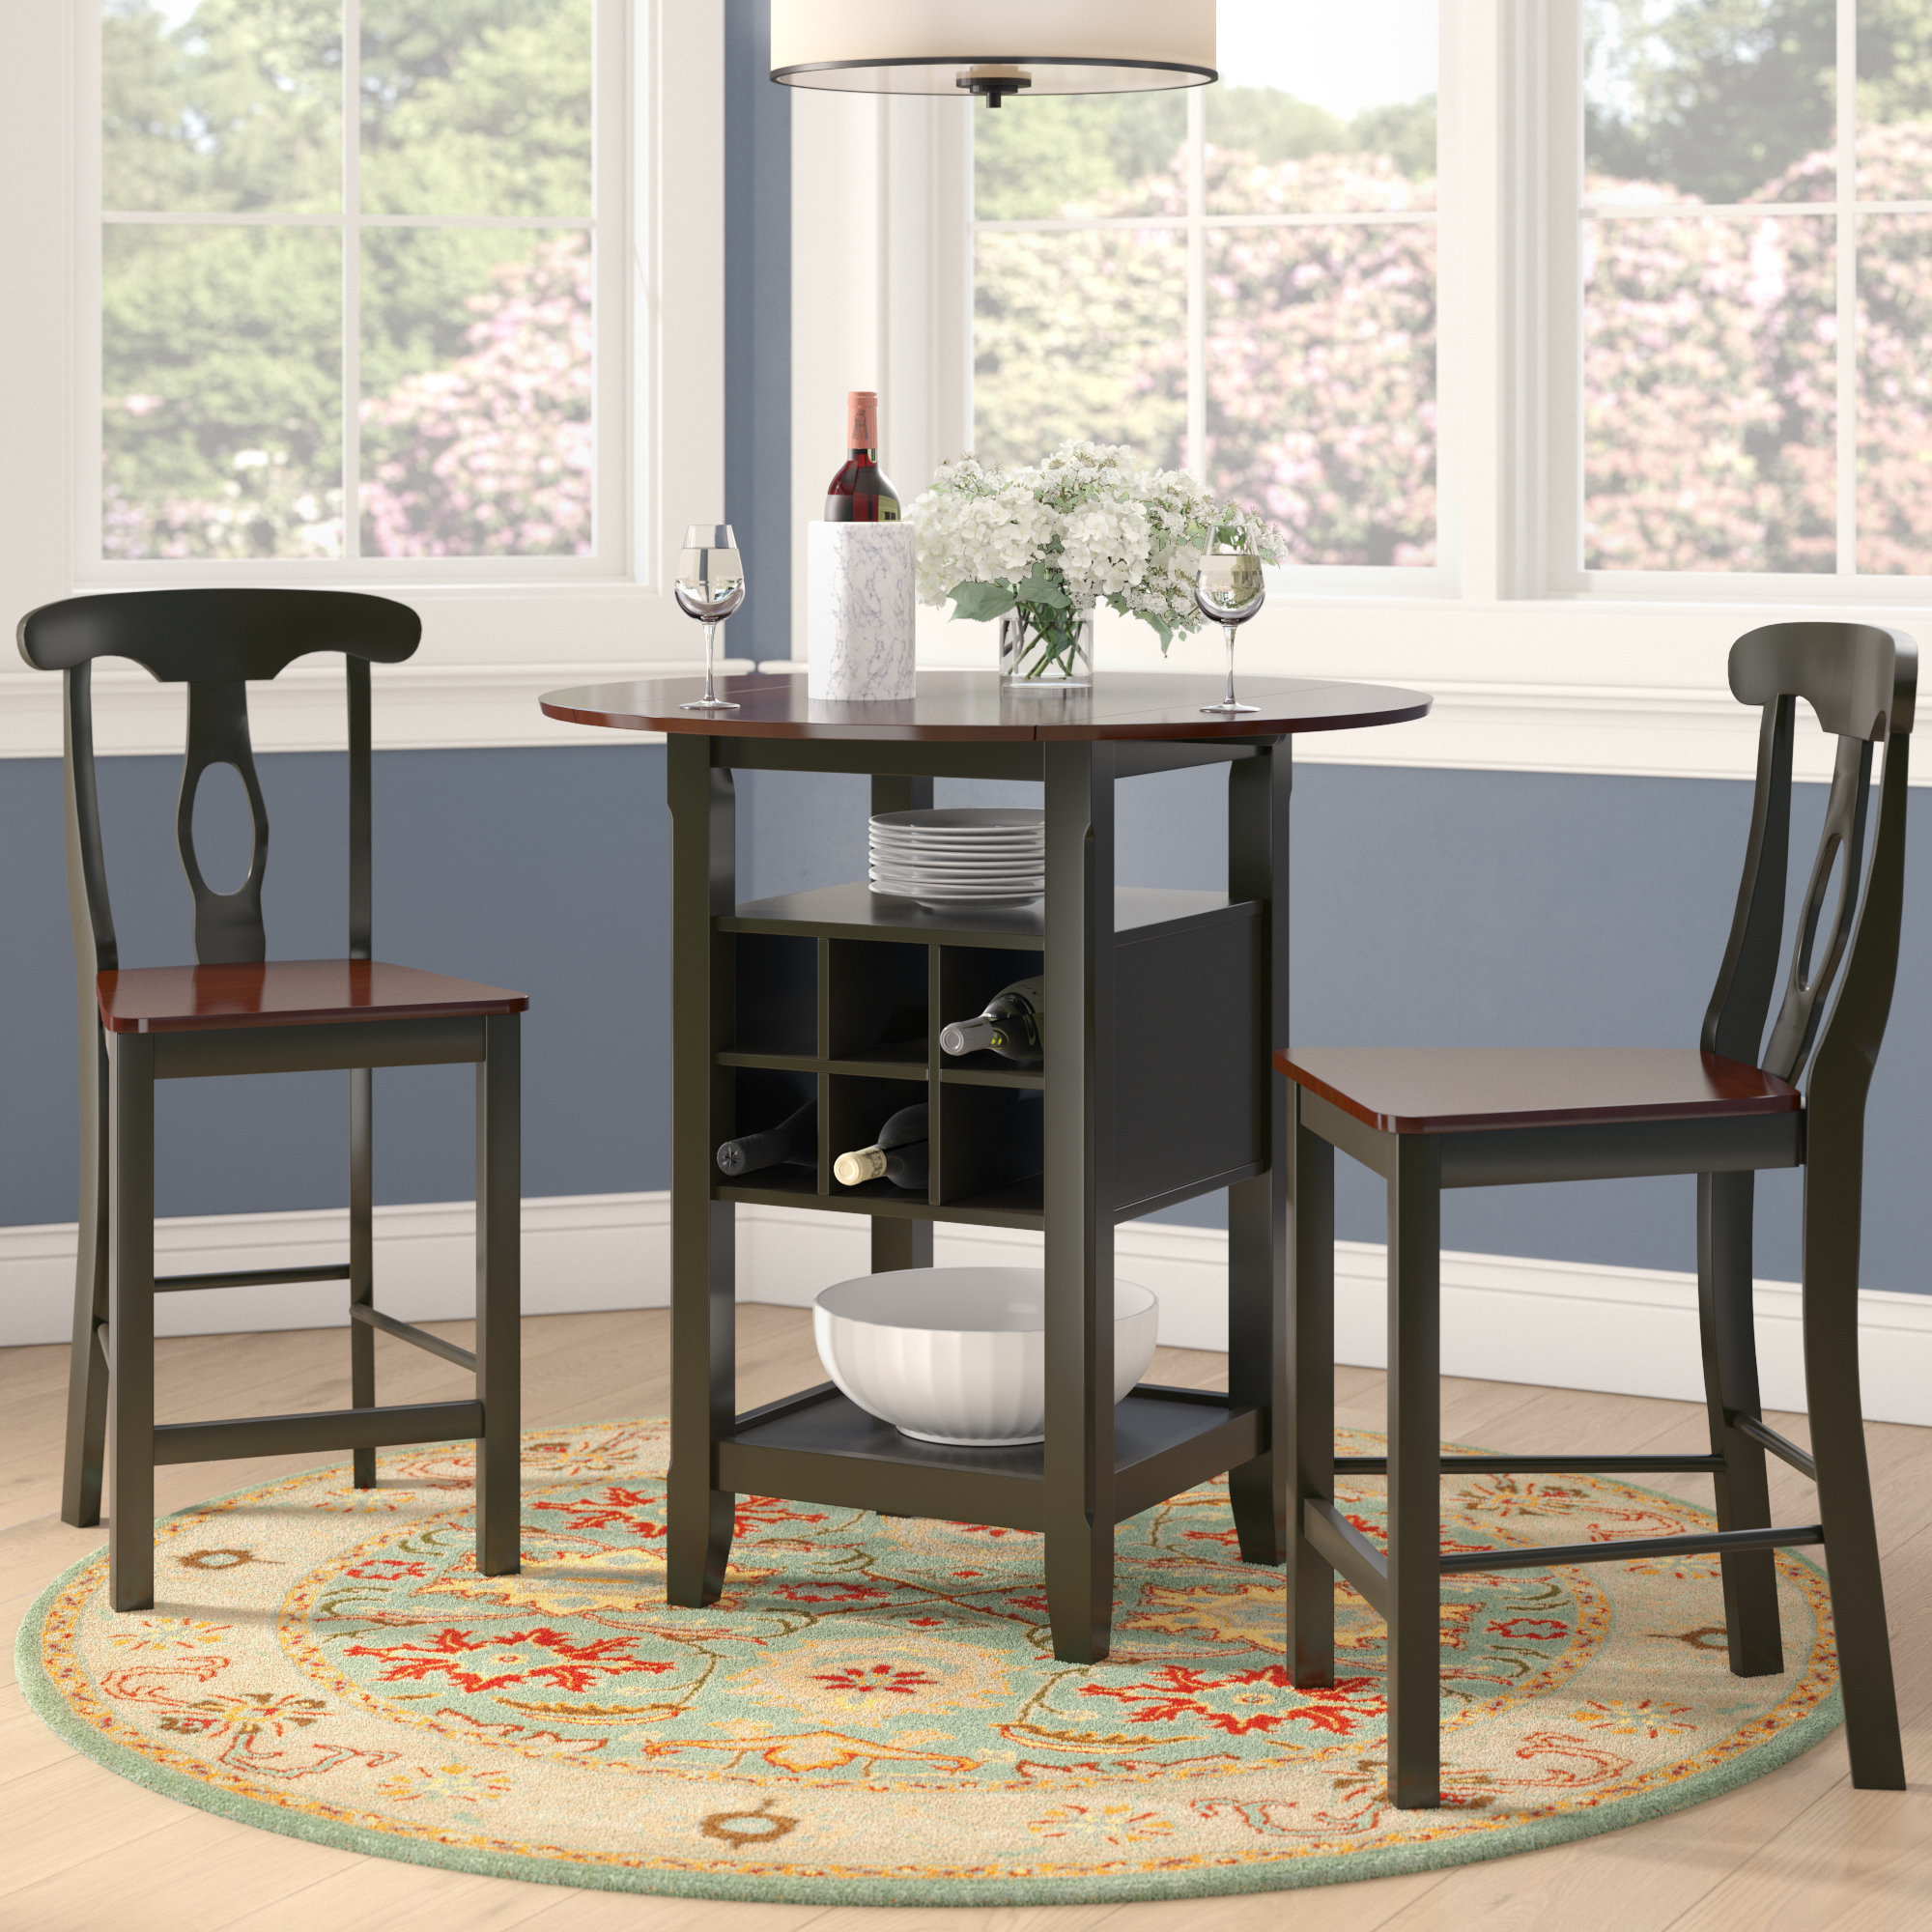 2020 Hood Canal 3 Piece Dining Sets Throughout Charlton Home Teneyck 3 Piece Counter Height Pub Table Set & Reviews (View 8 of 25)